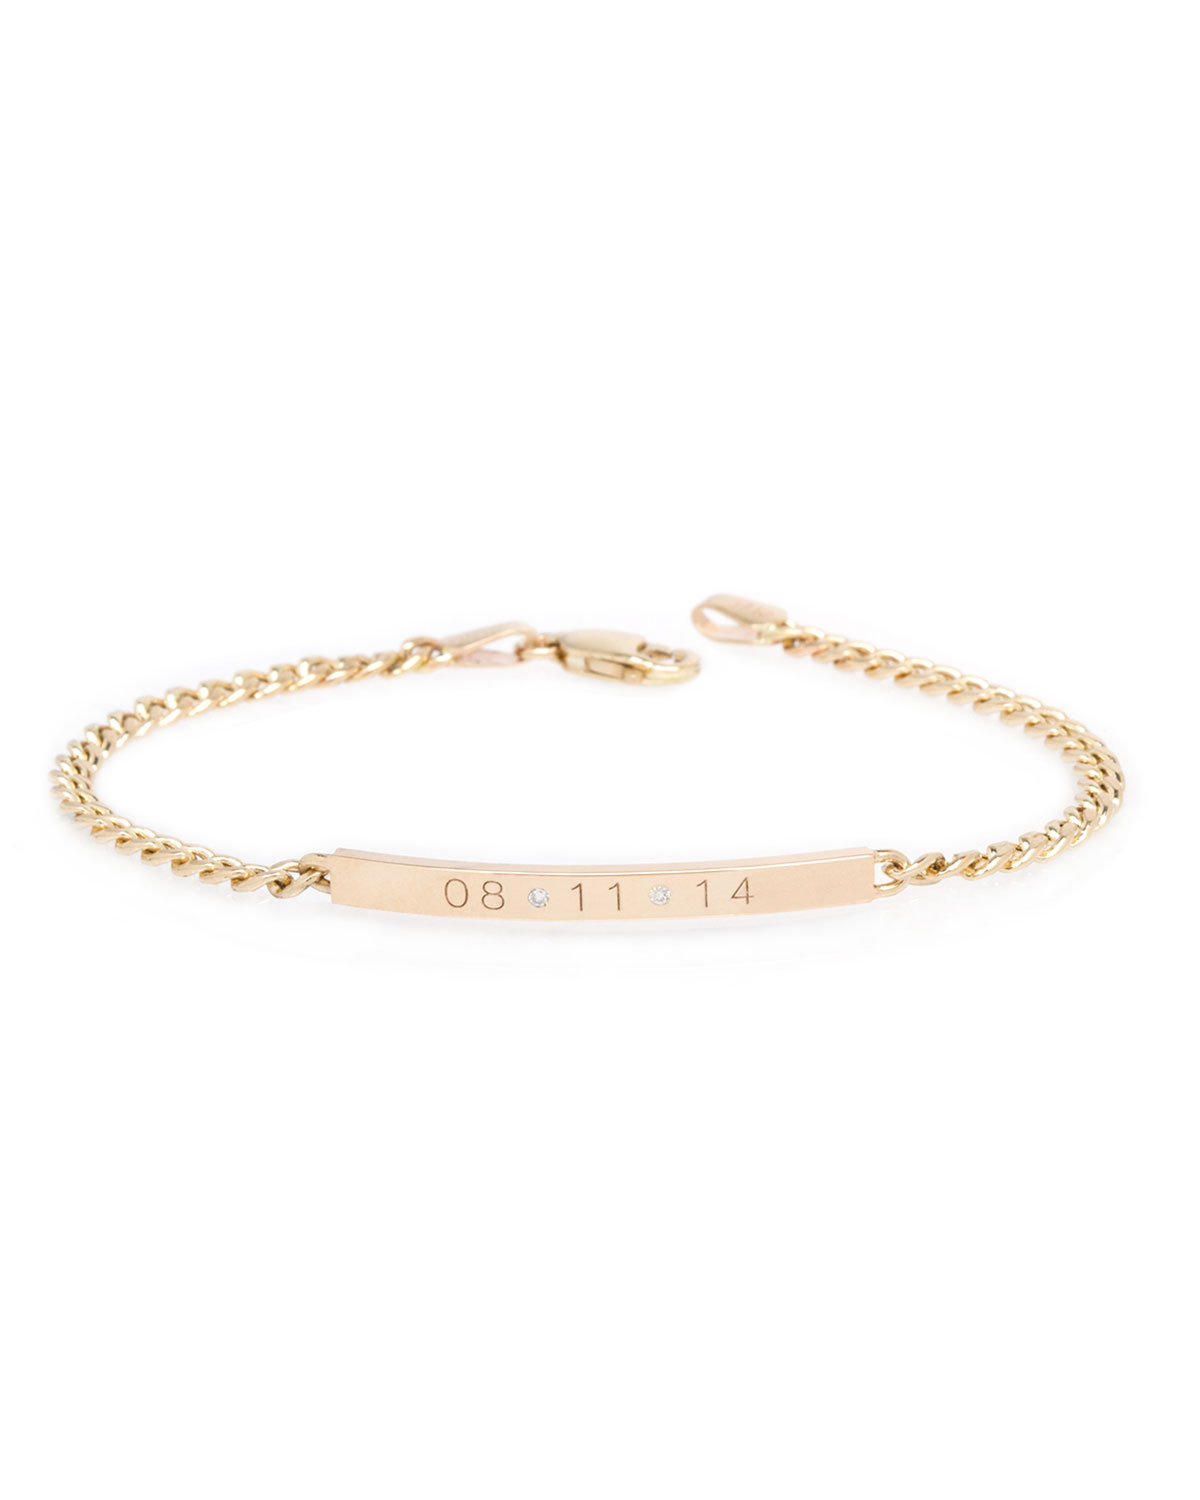 Zoë Chicco PERSONALIZED 14K SMALL CURB-CHAIN DATE BRACELET